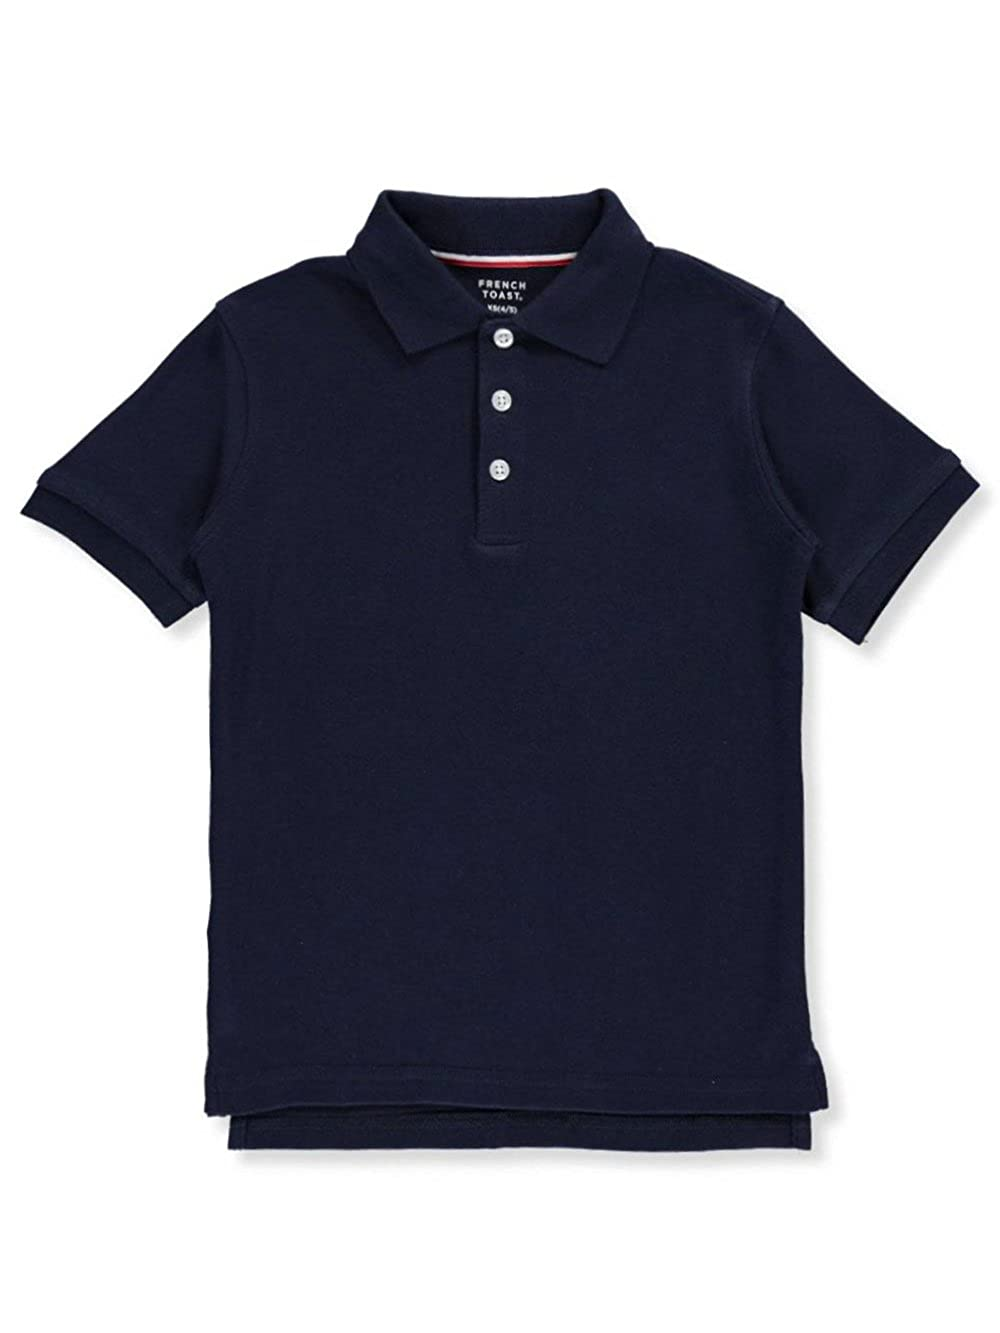 French Toast Big Boys' S/S Knit Polo Shirt